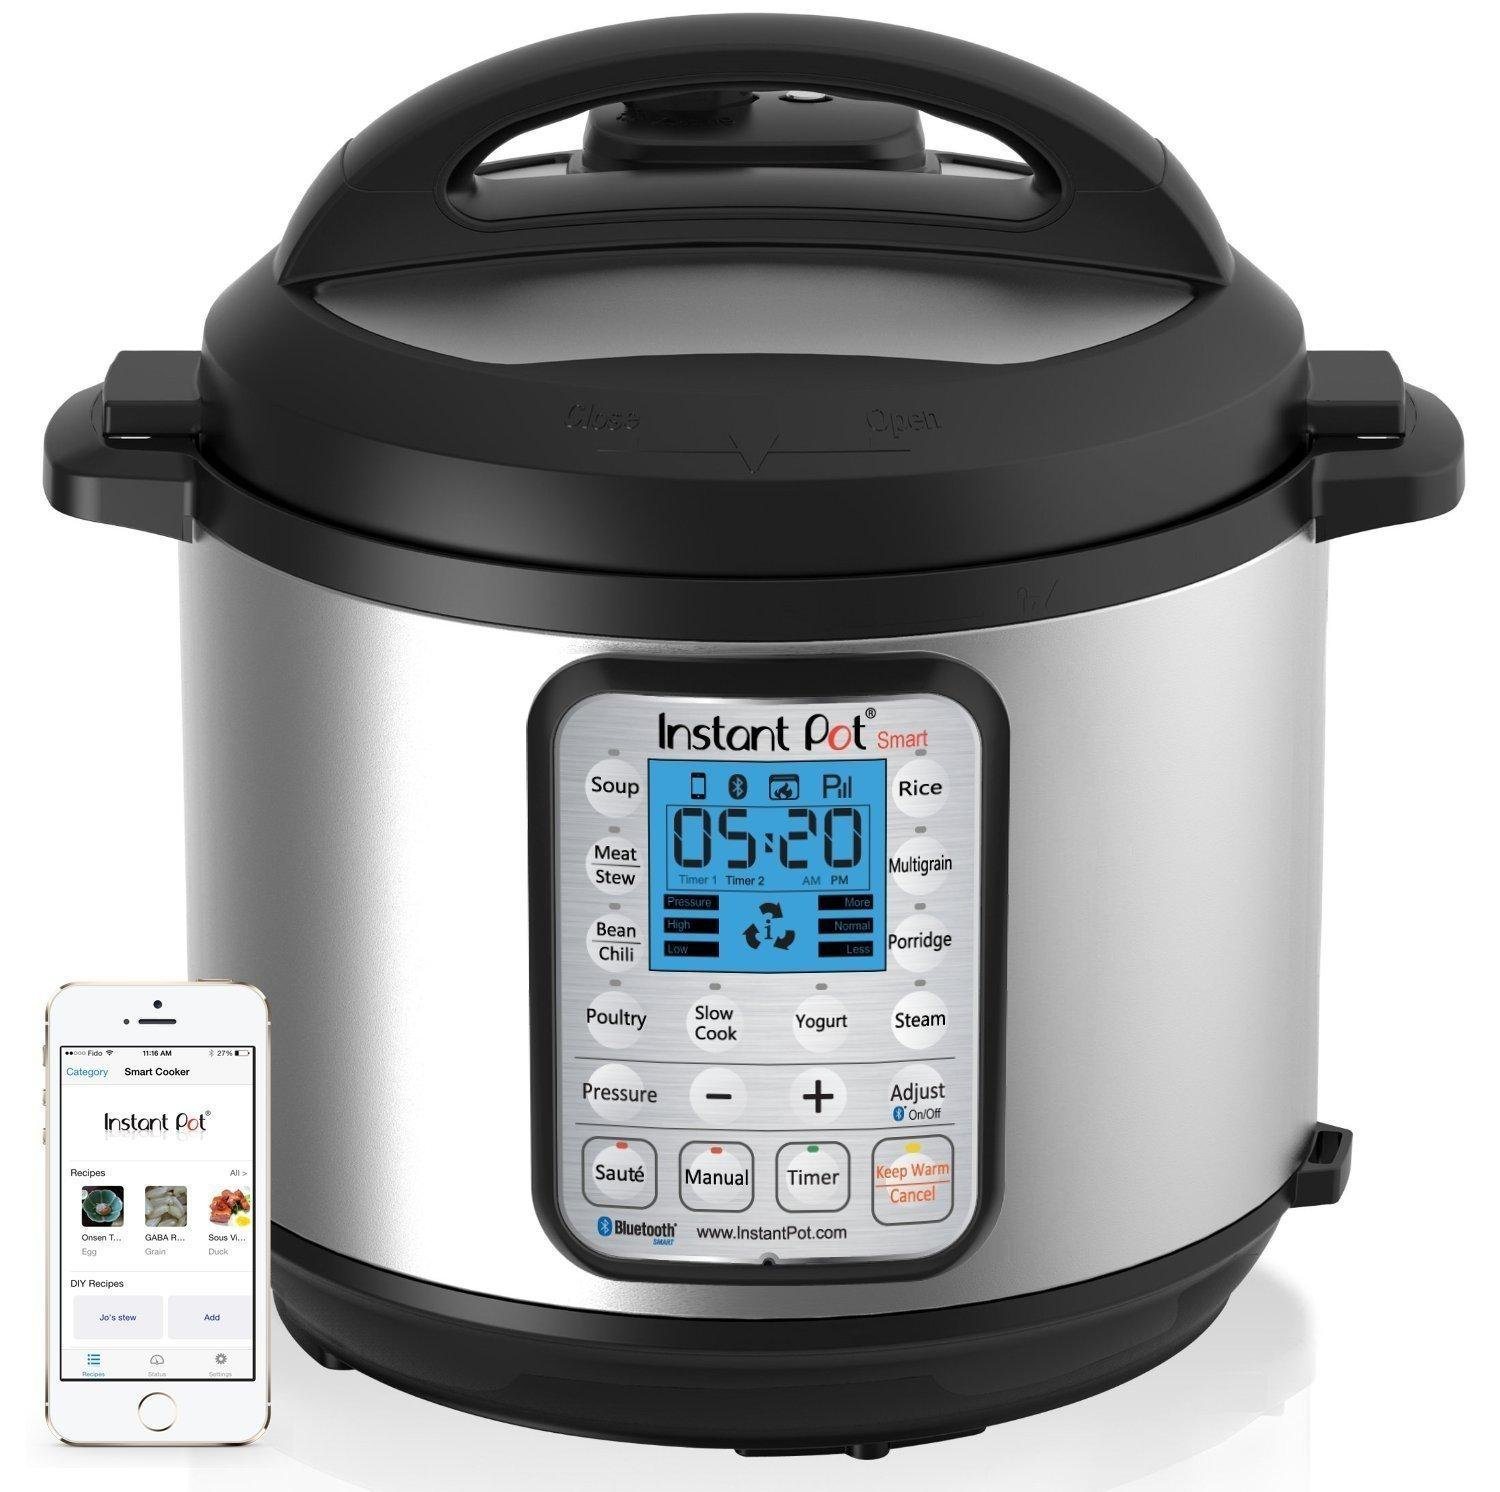 Instant Pot Pressure Cooker: Amazon.com: Instant Pot IP-Smart Bluetooth-Enabled